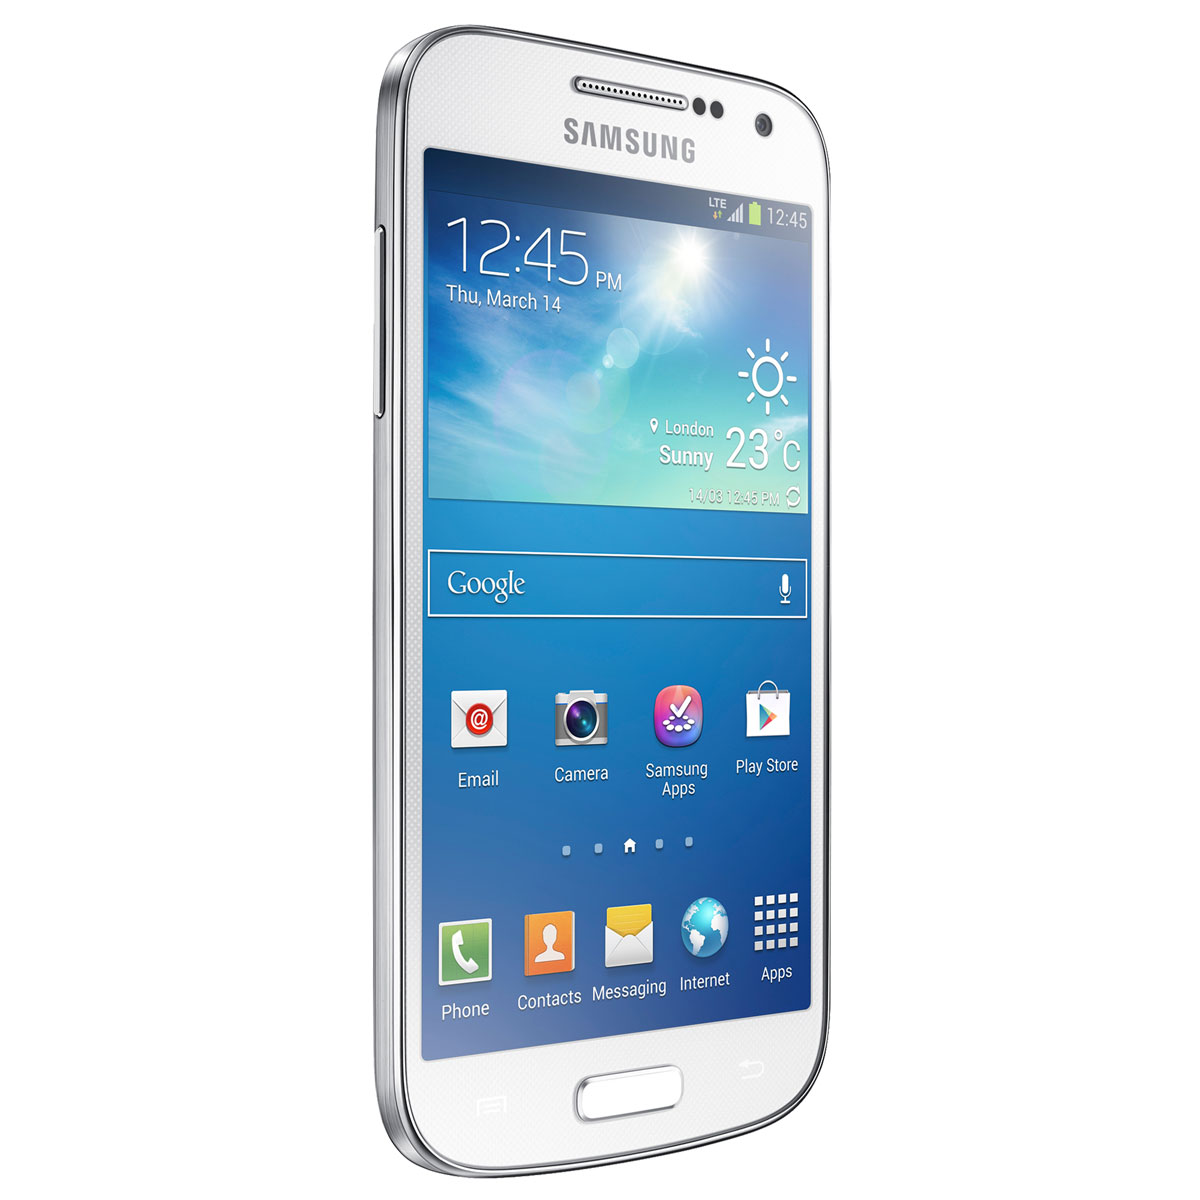 samsung galaxy s4 mini gt i9195 white frost 8 go mobile. Black Bedroom Furniture Sets. Home Design Ideas